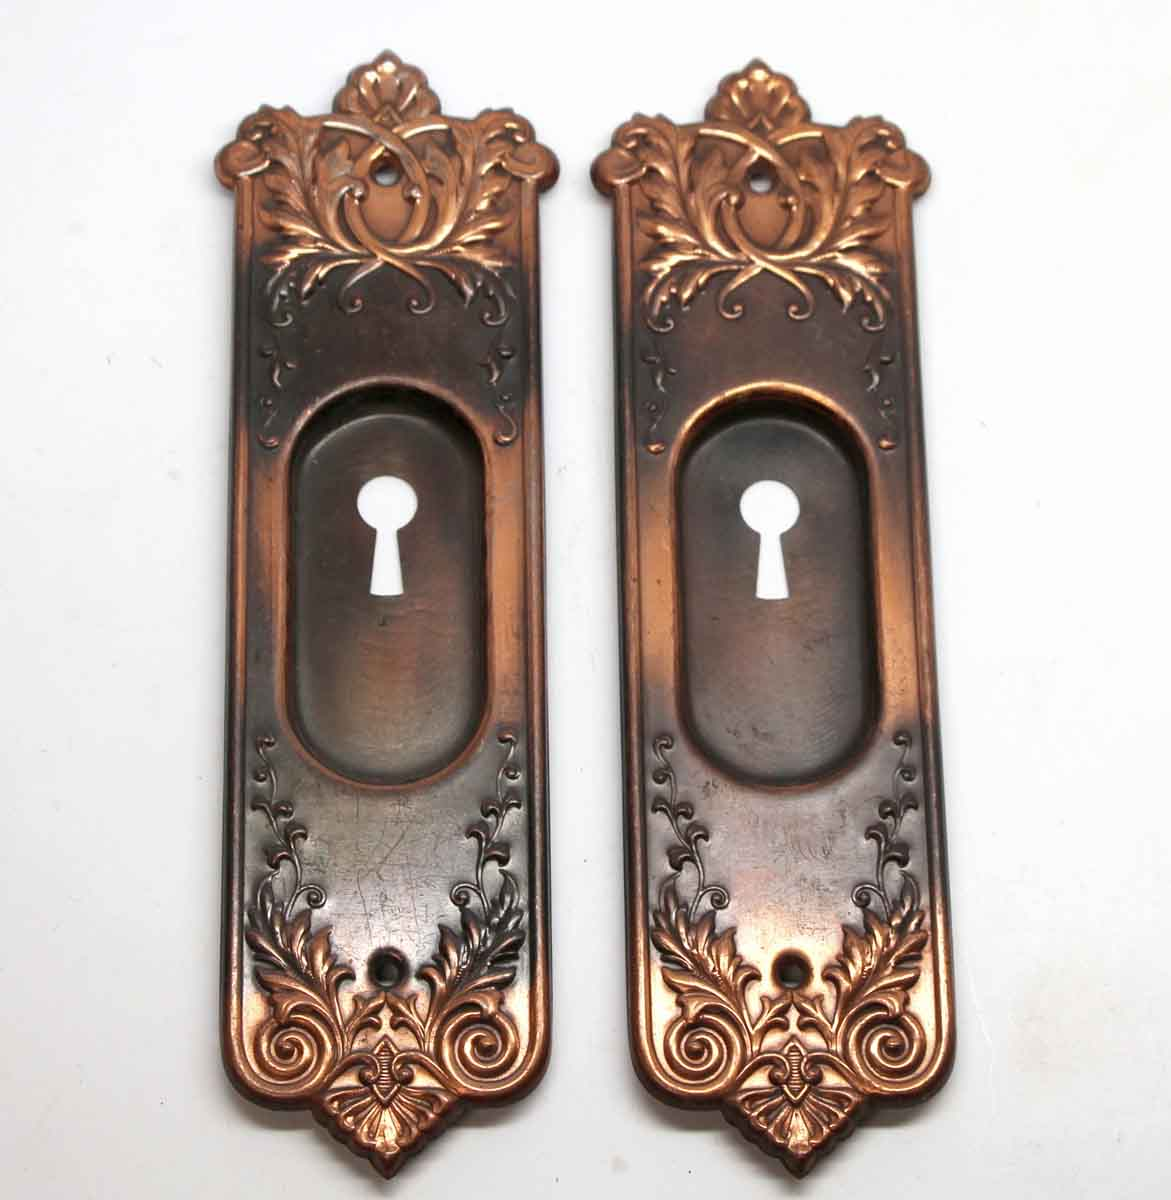 Bon Pocket Door Hardware   Ornate Copper U0026 Black Finish Steel Pocket Door Plates